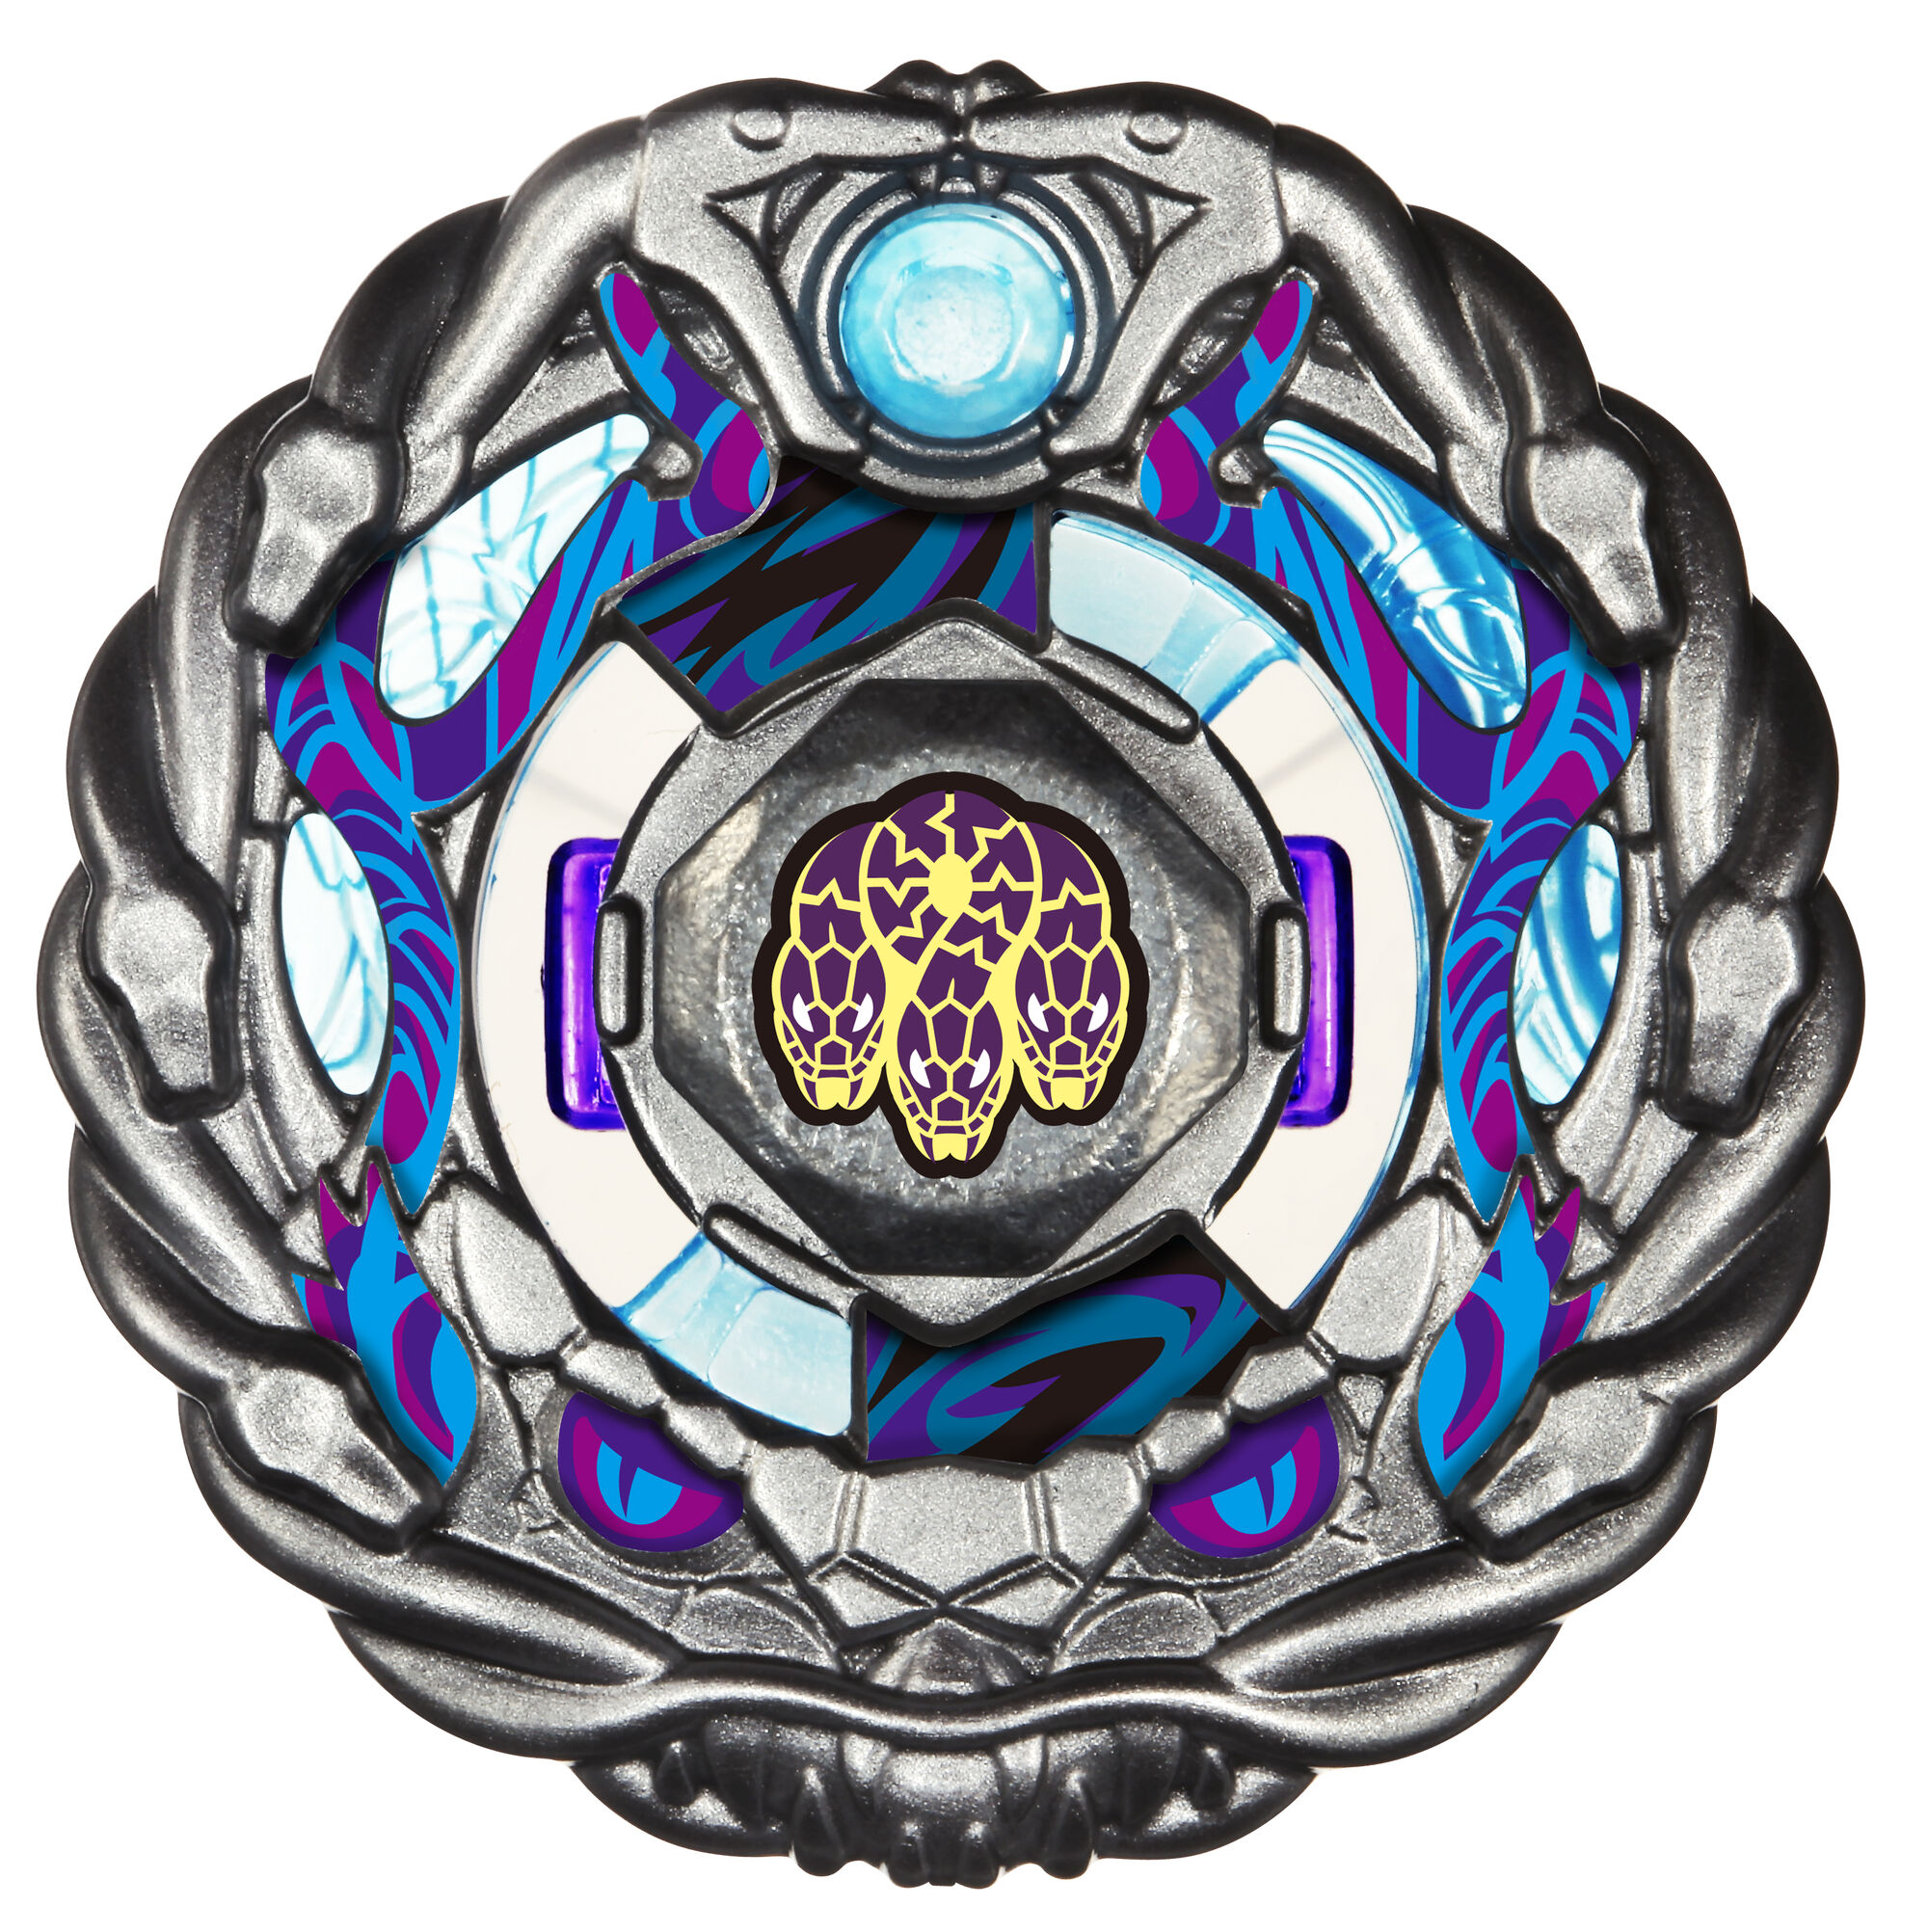 Pirate orochi 145d beyblade wiki fandom powered by wikia - Beyblade shogun steel toupie ...